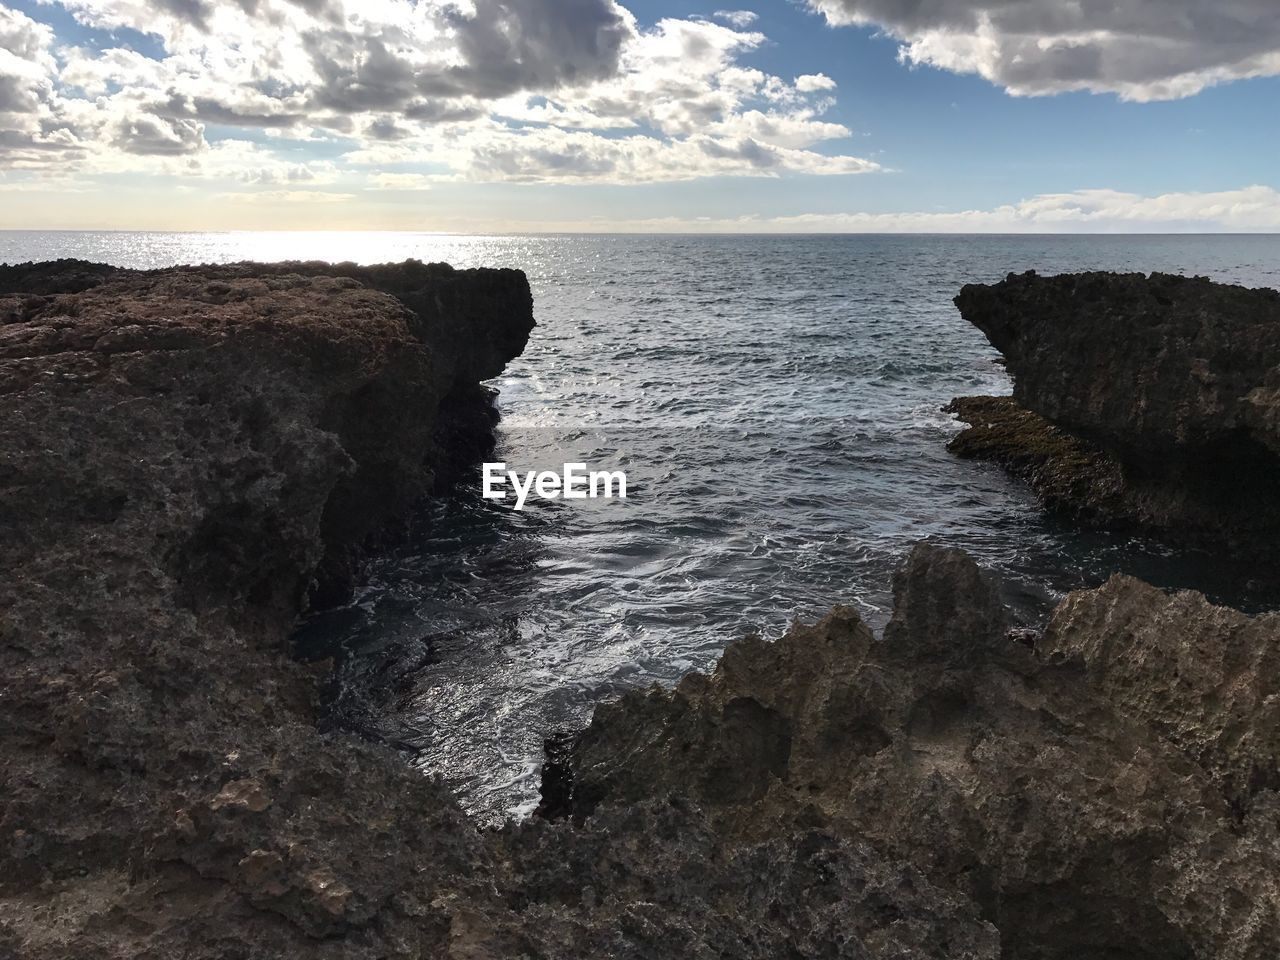 sea, water, nature, rock - object, beauty in nature, rock formation, scenics, horizon over water, sky, tranquility, tranquil scene, rock, no people, cloud - sky, outdoors, cliff, day, beach, wave